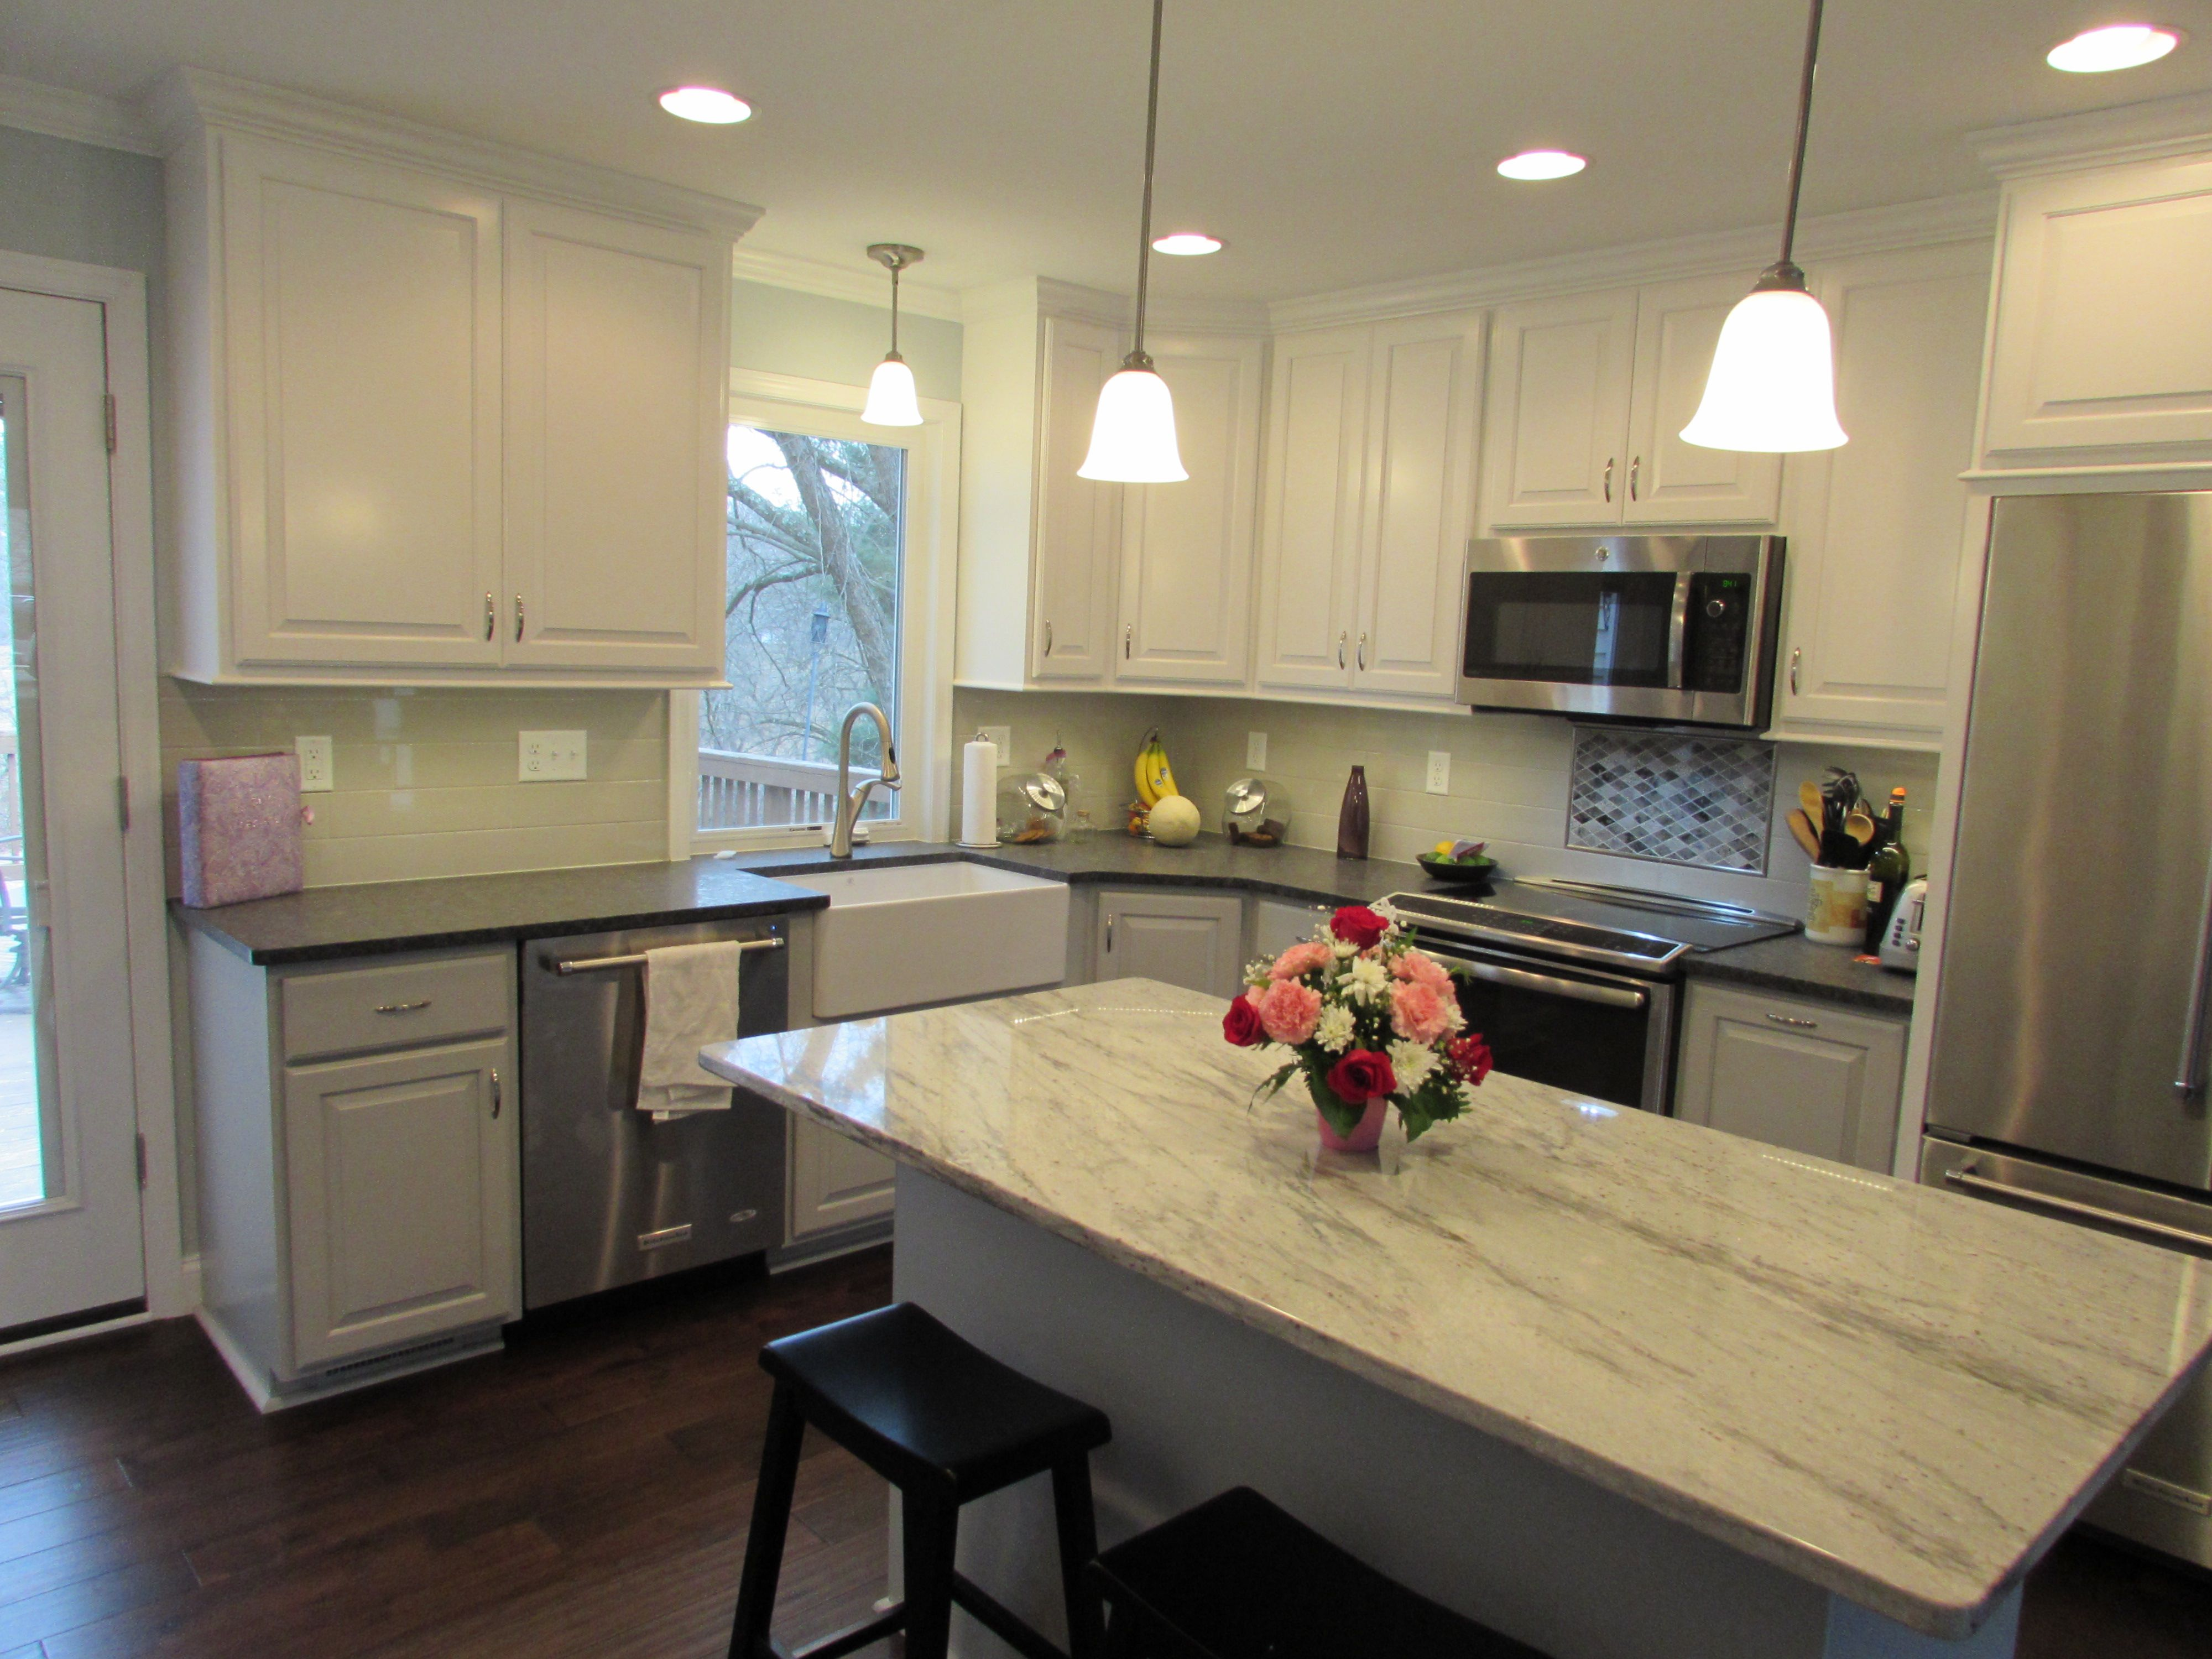 Lovely Kitchen Remodel In Urbana, MD With Farm Sink And Casement Window By Best Of  Frederick Home Improvement Company Talon Construction Home Design Ideas